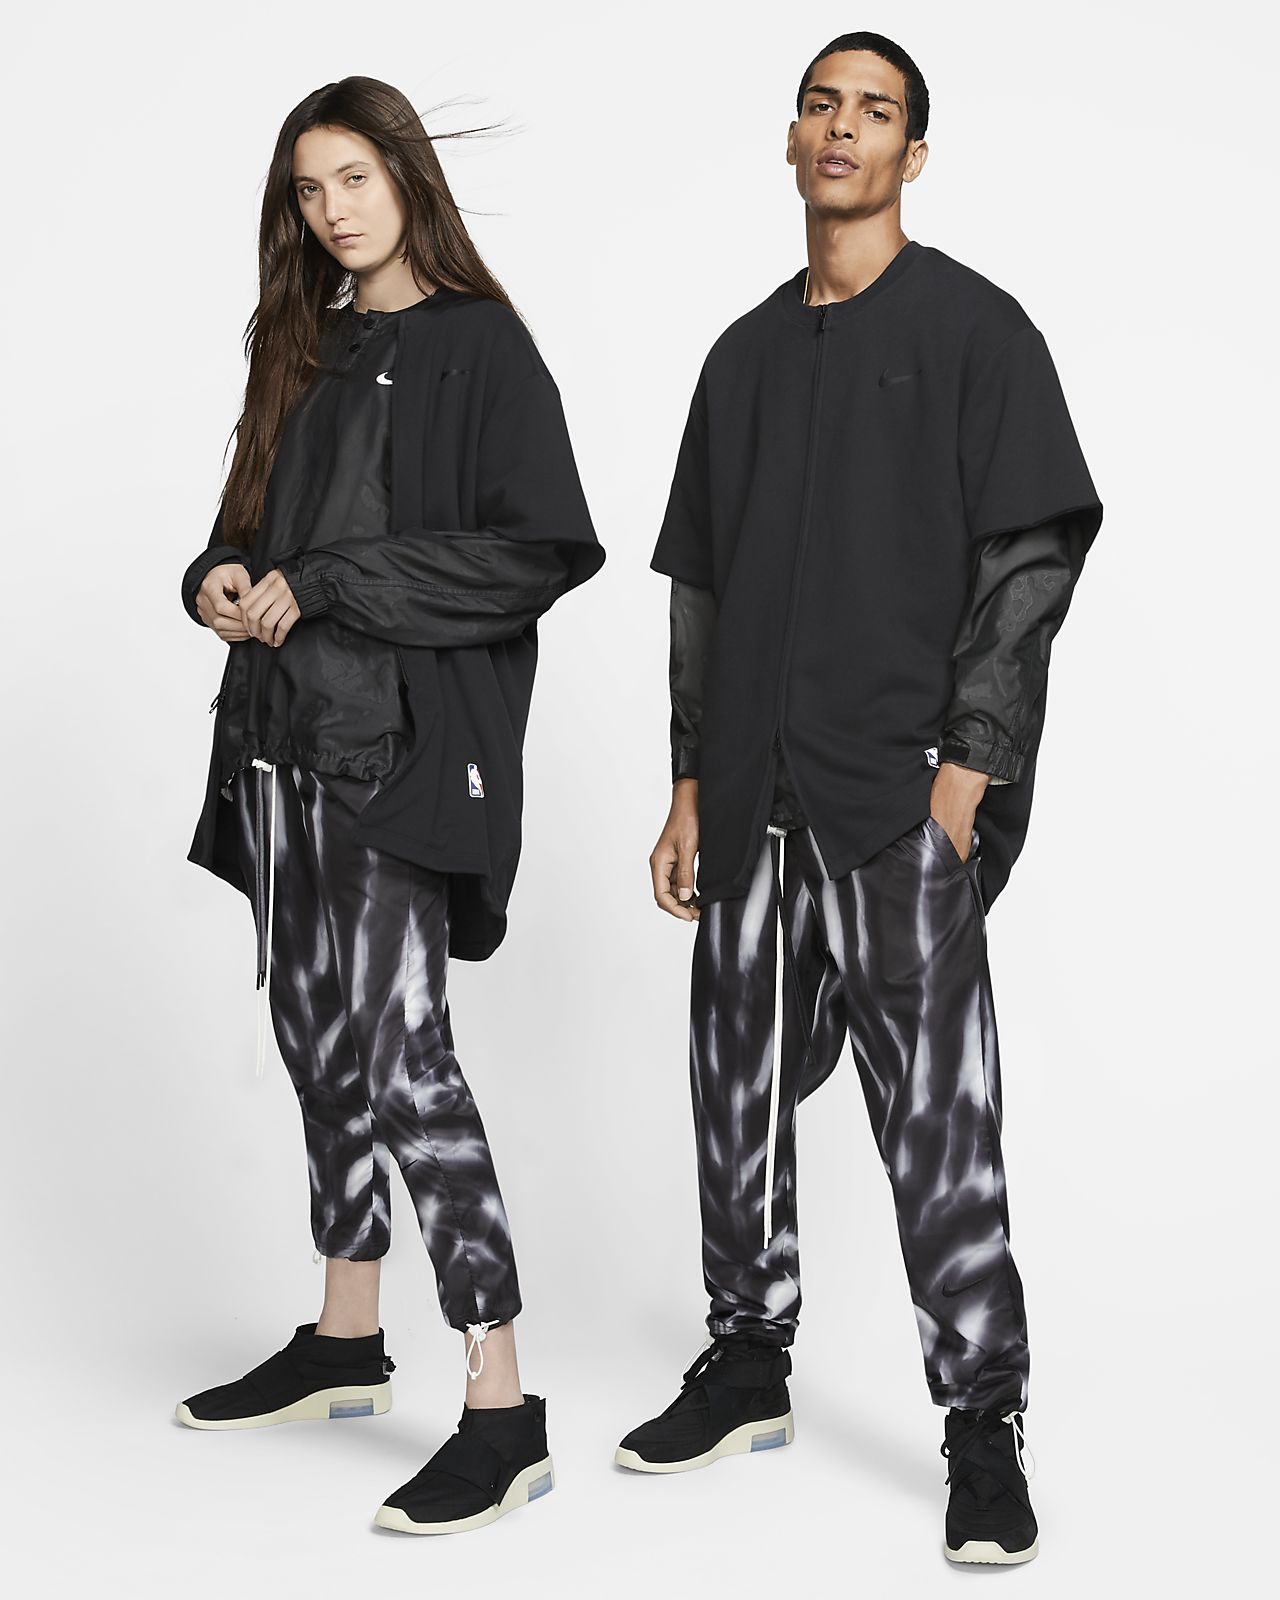 Nike x Fear of God All-over Print Trousers